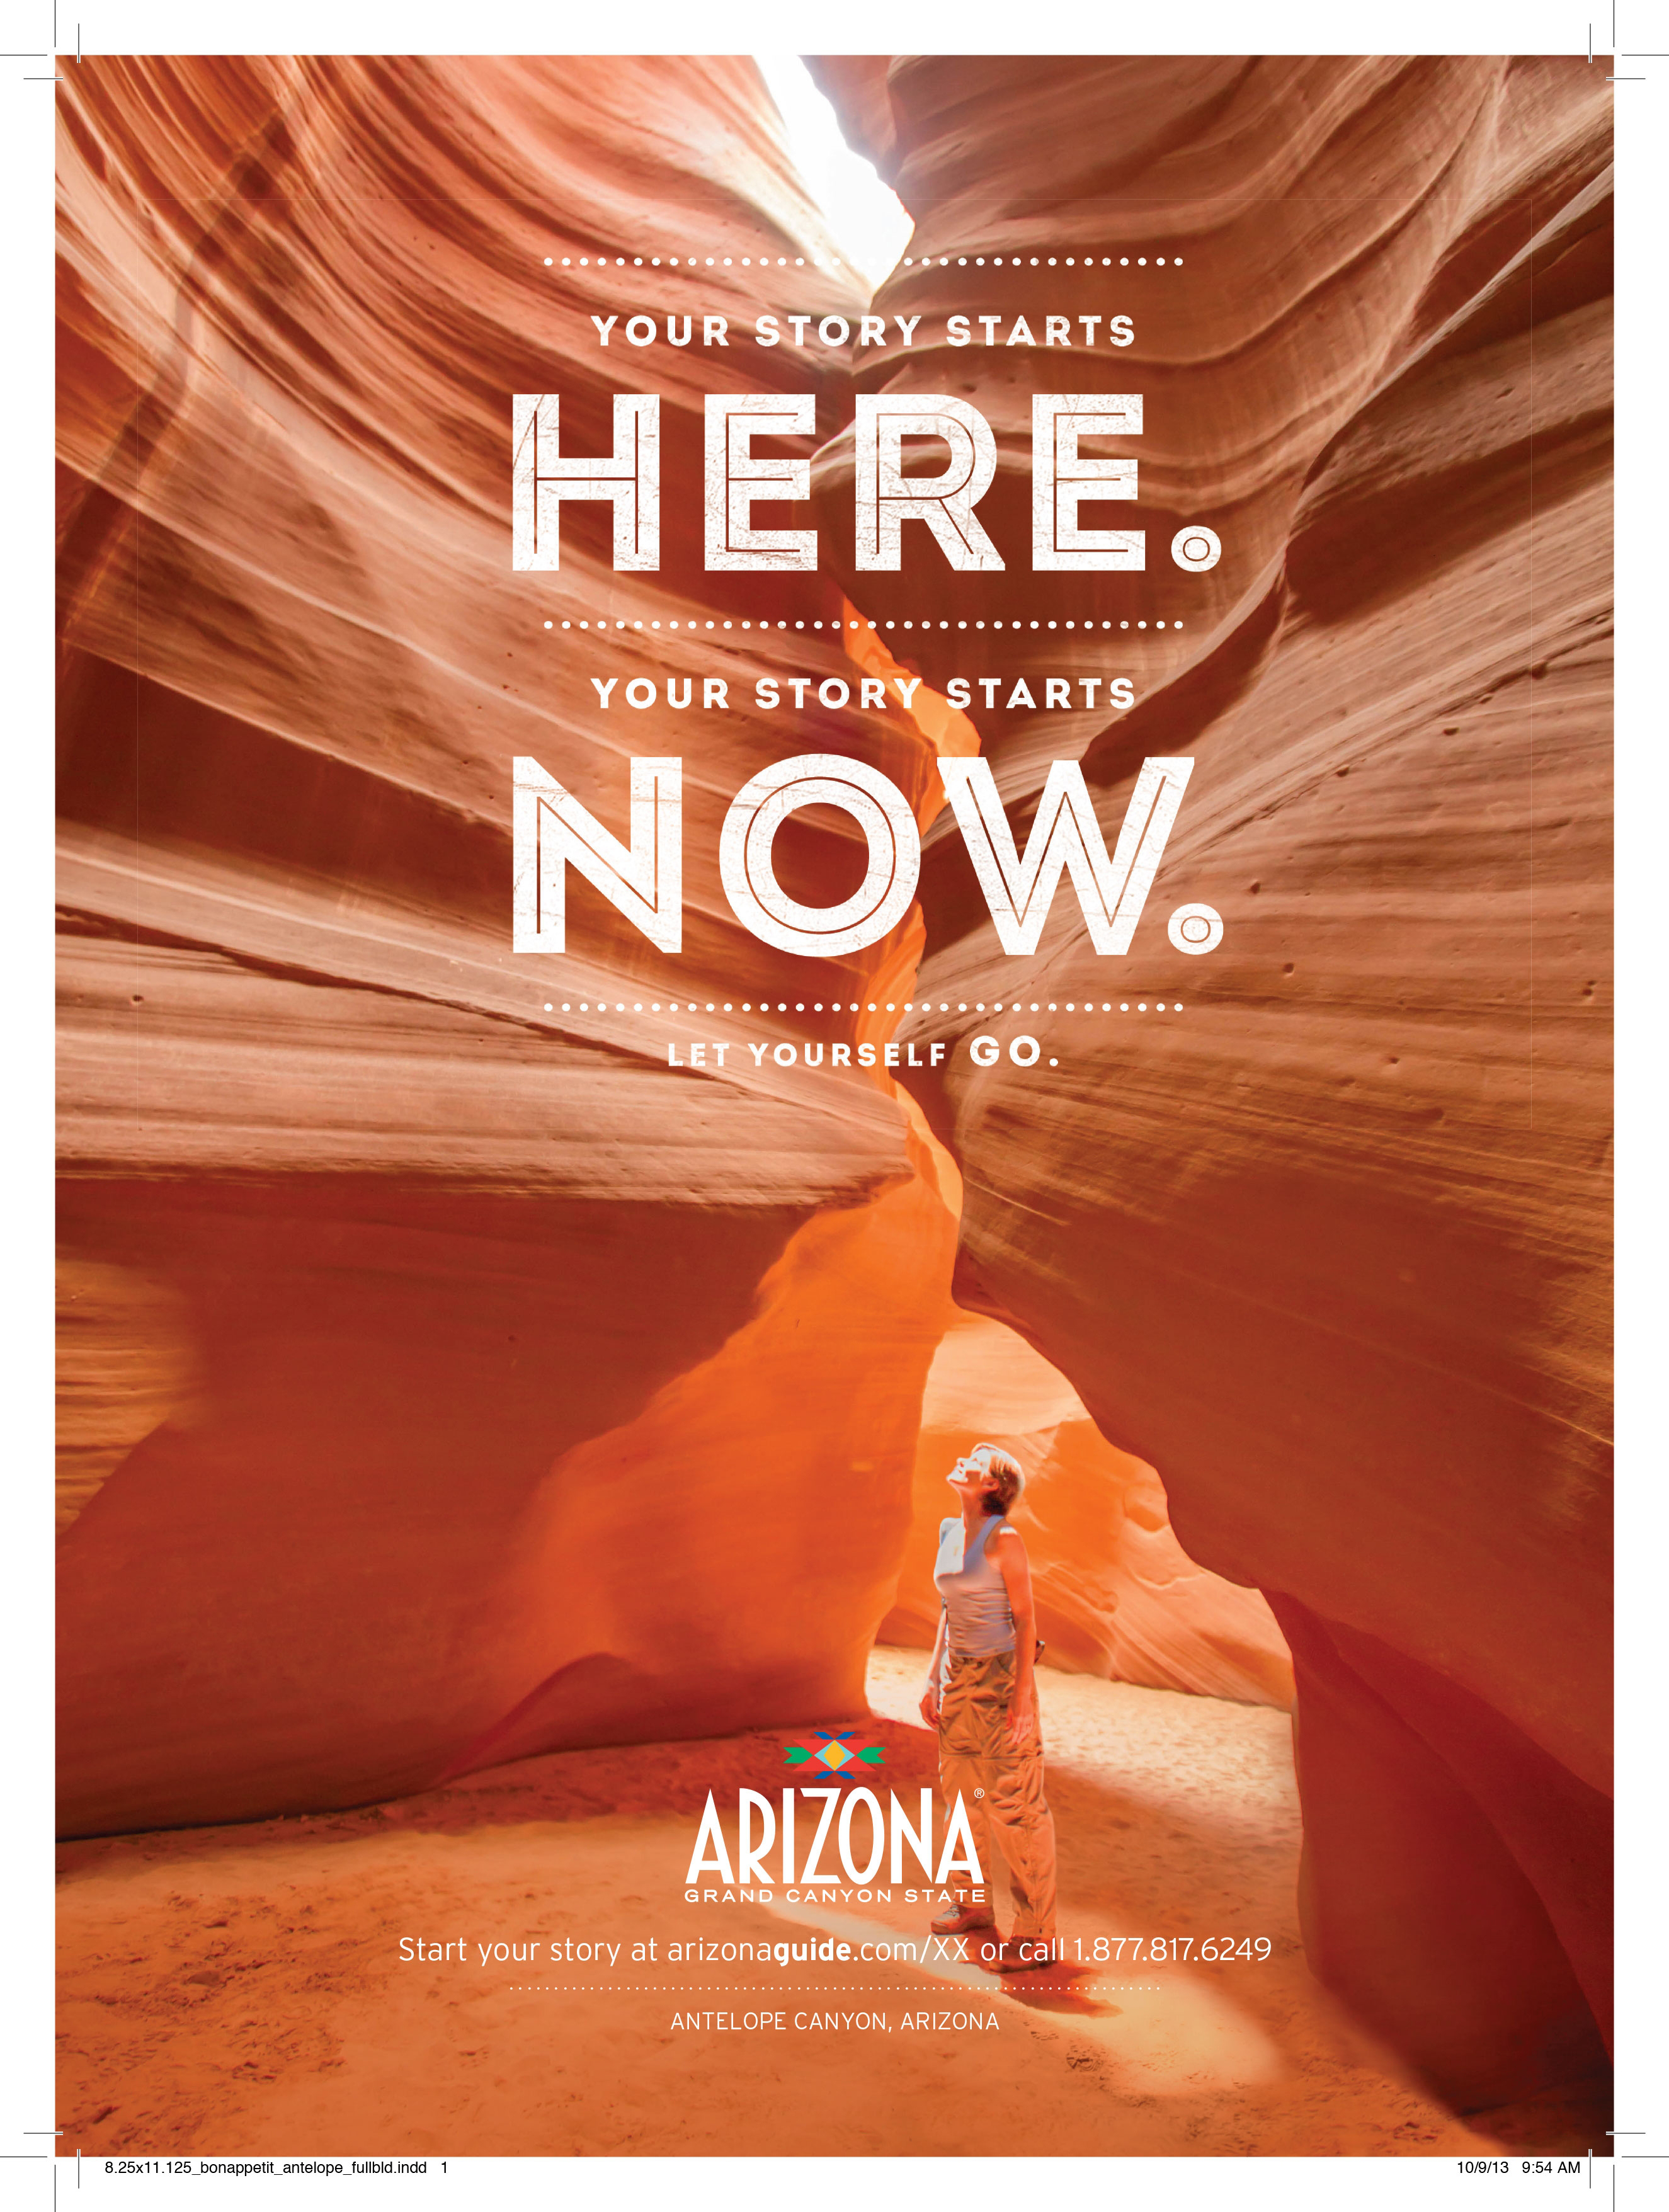 arizona office of tourism debuts new travel advertising campaign